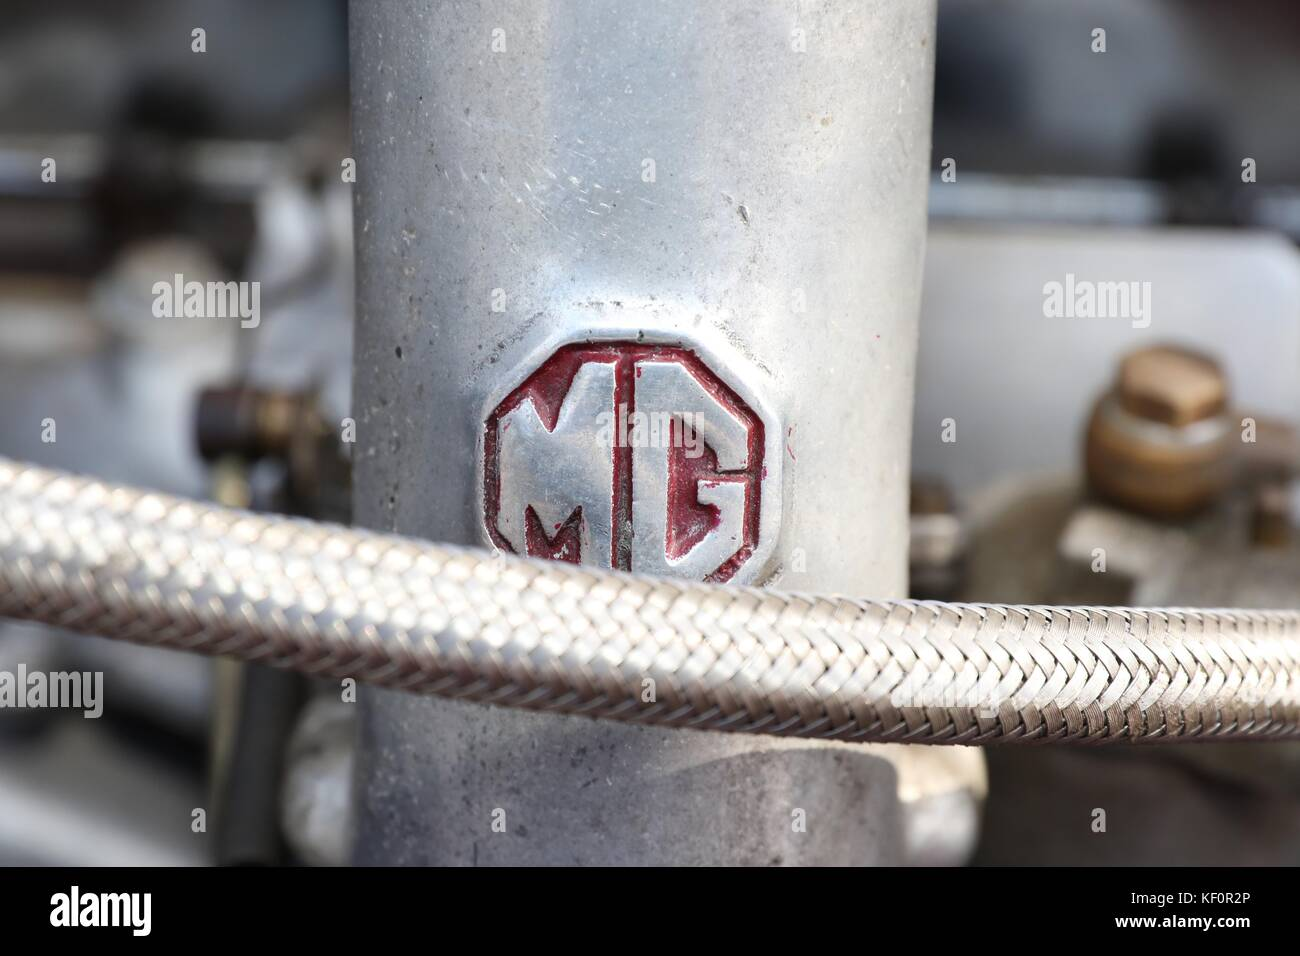 1953 MG YB 1.25 XPAG Engine  Picture by Antony Thompson - Stock Image